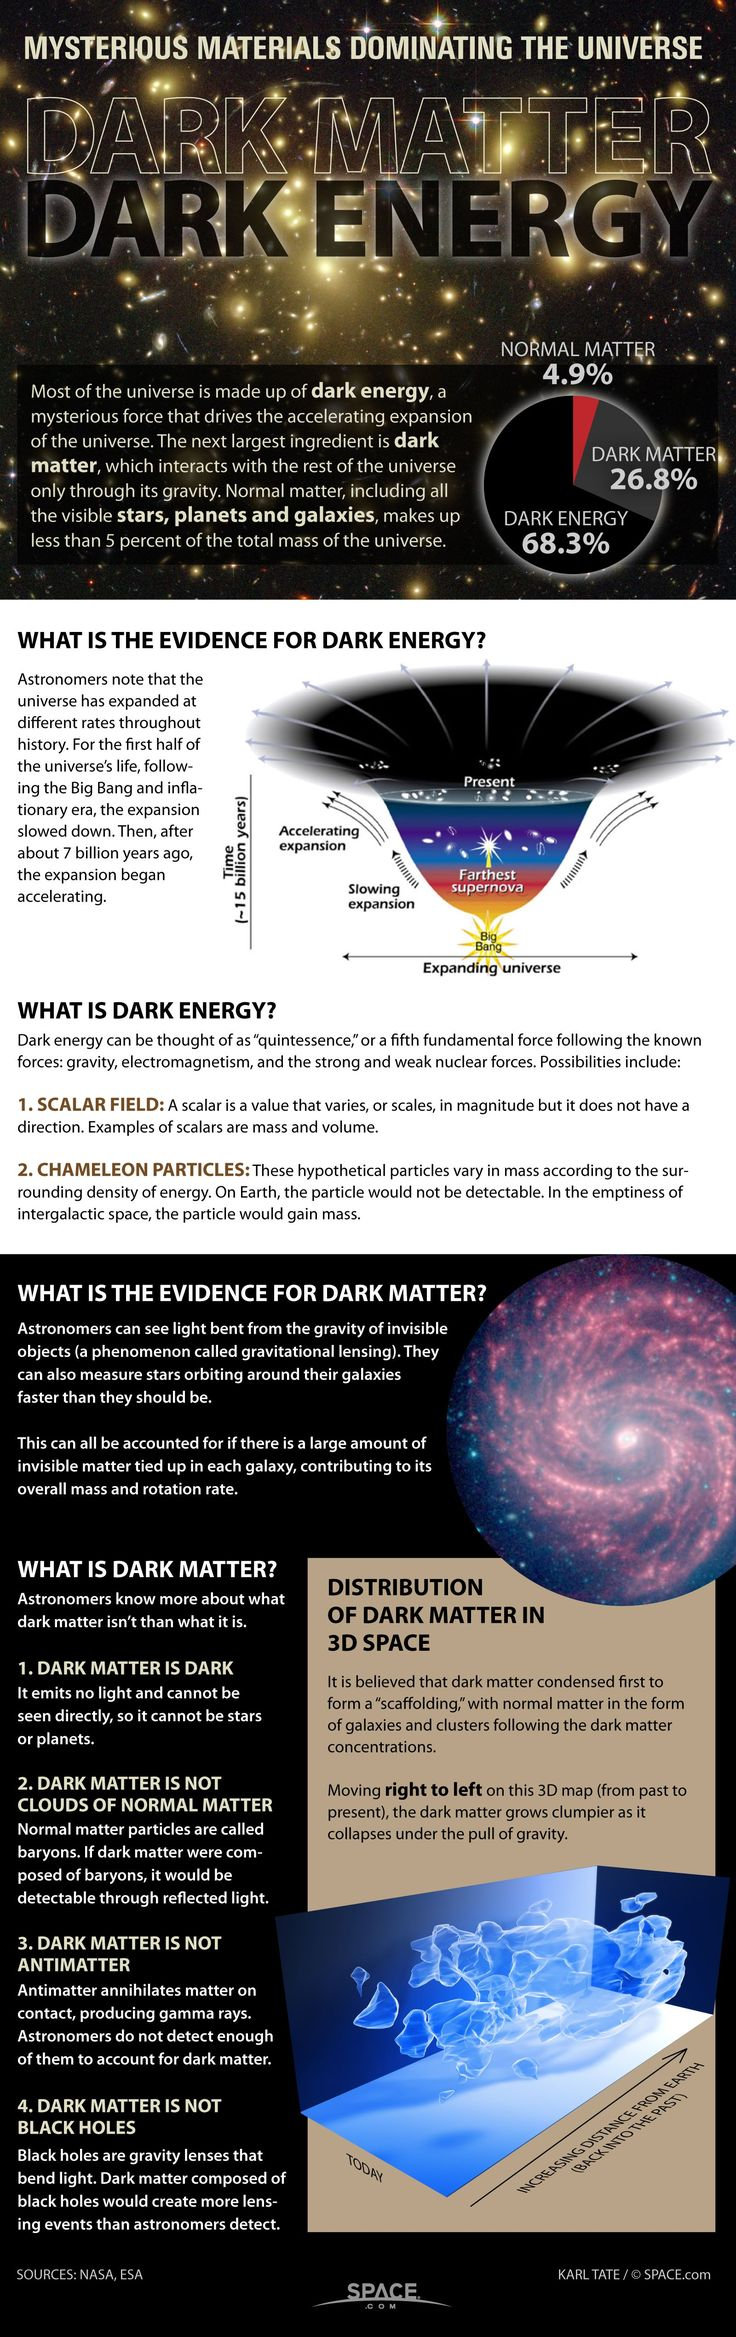 New Dark Matter Theory Weighs Superheavy Particle Space.com | 3/17/16